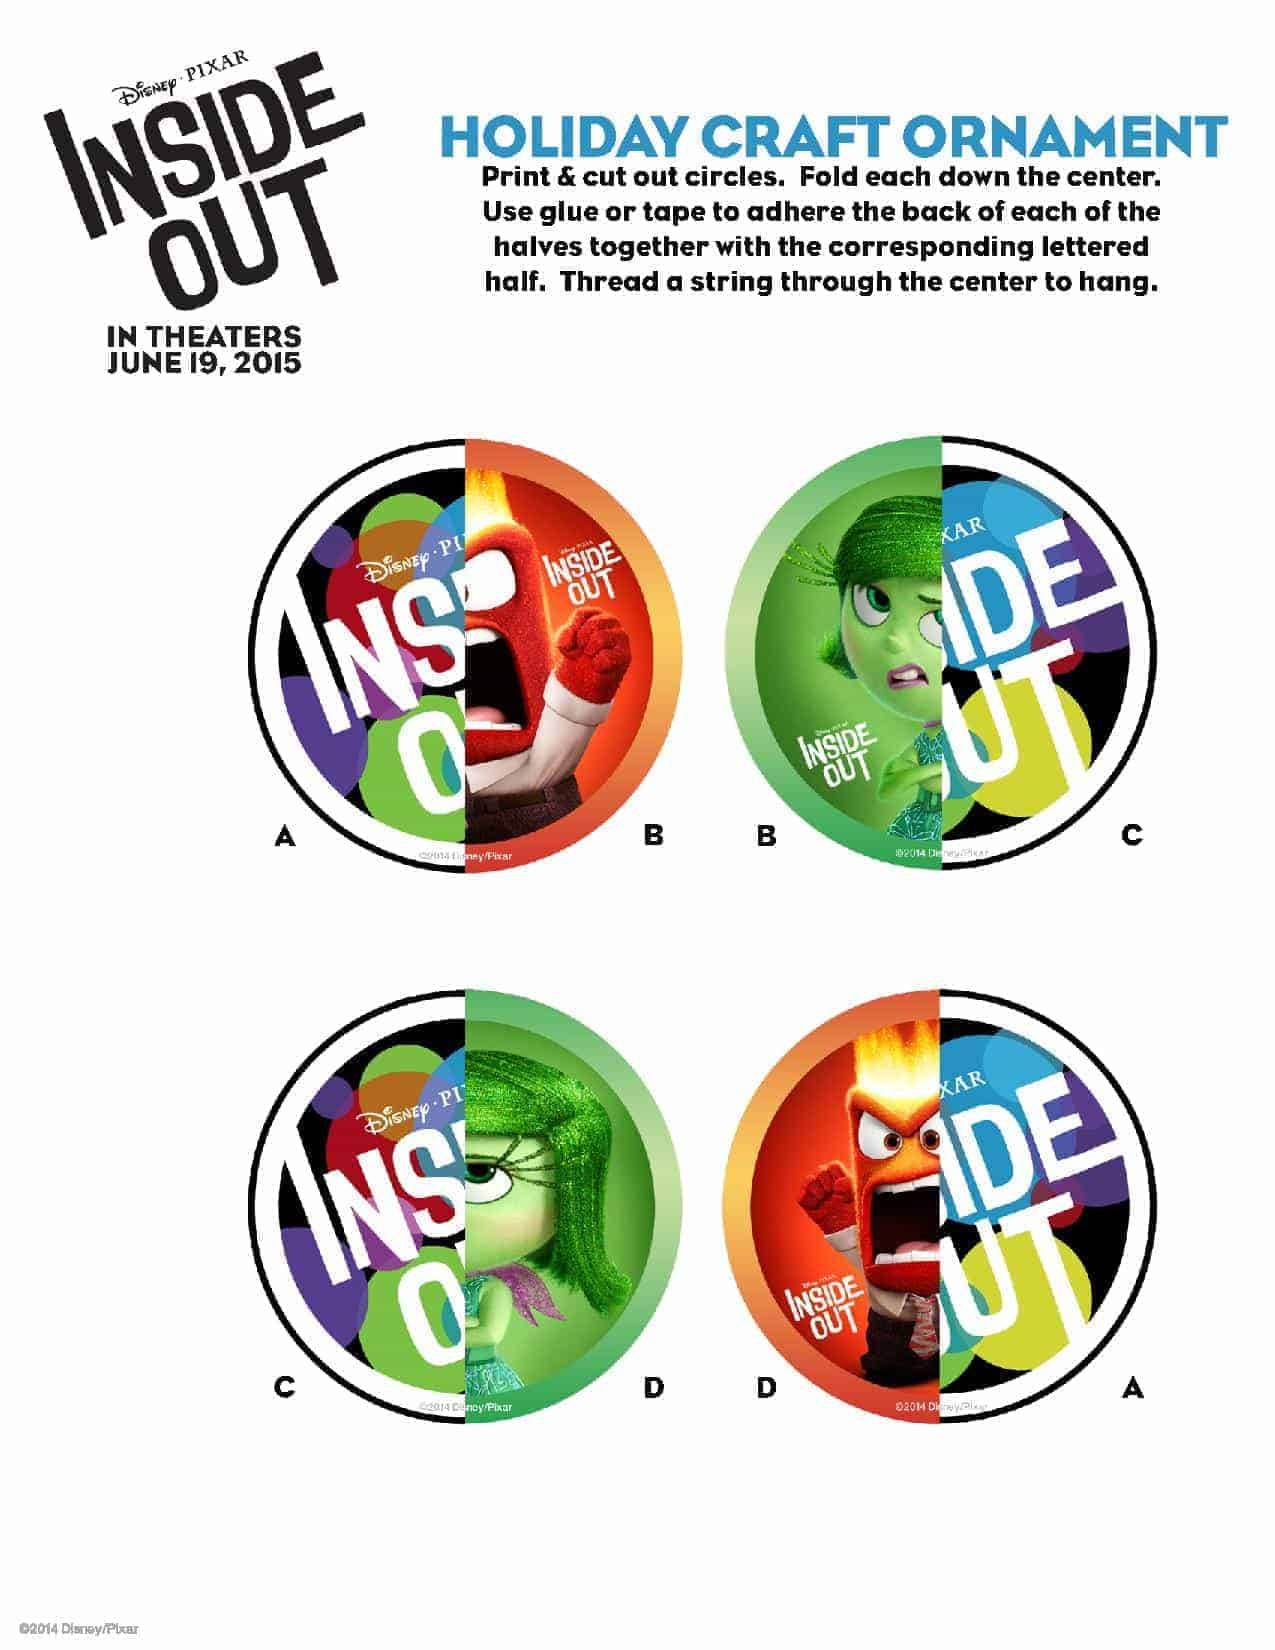 Inside Out Holiday Ornaments